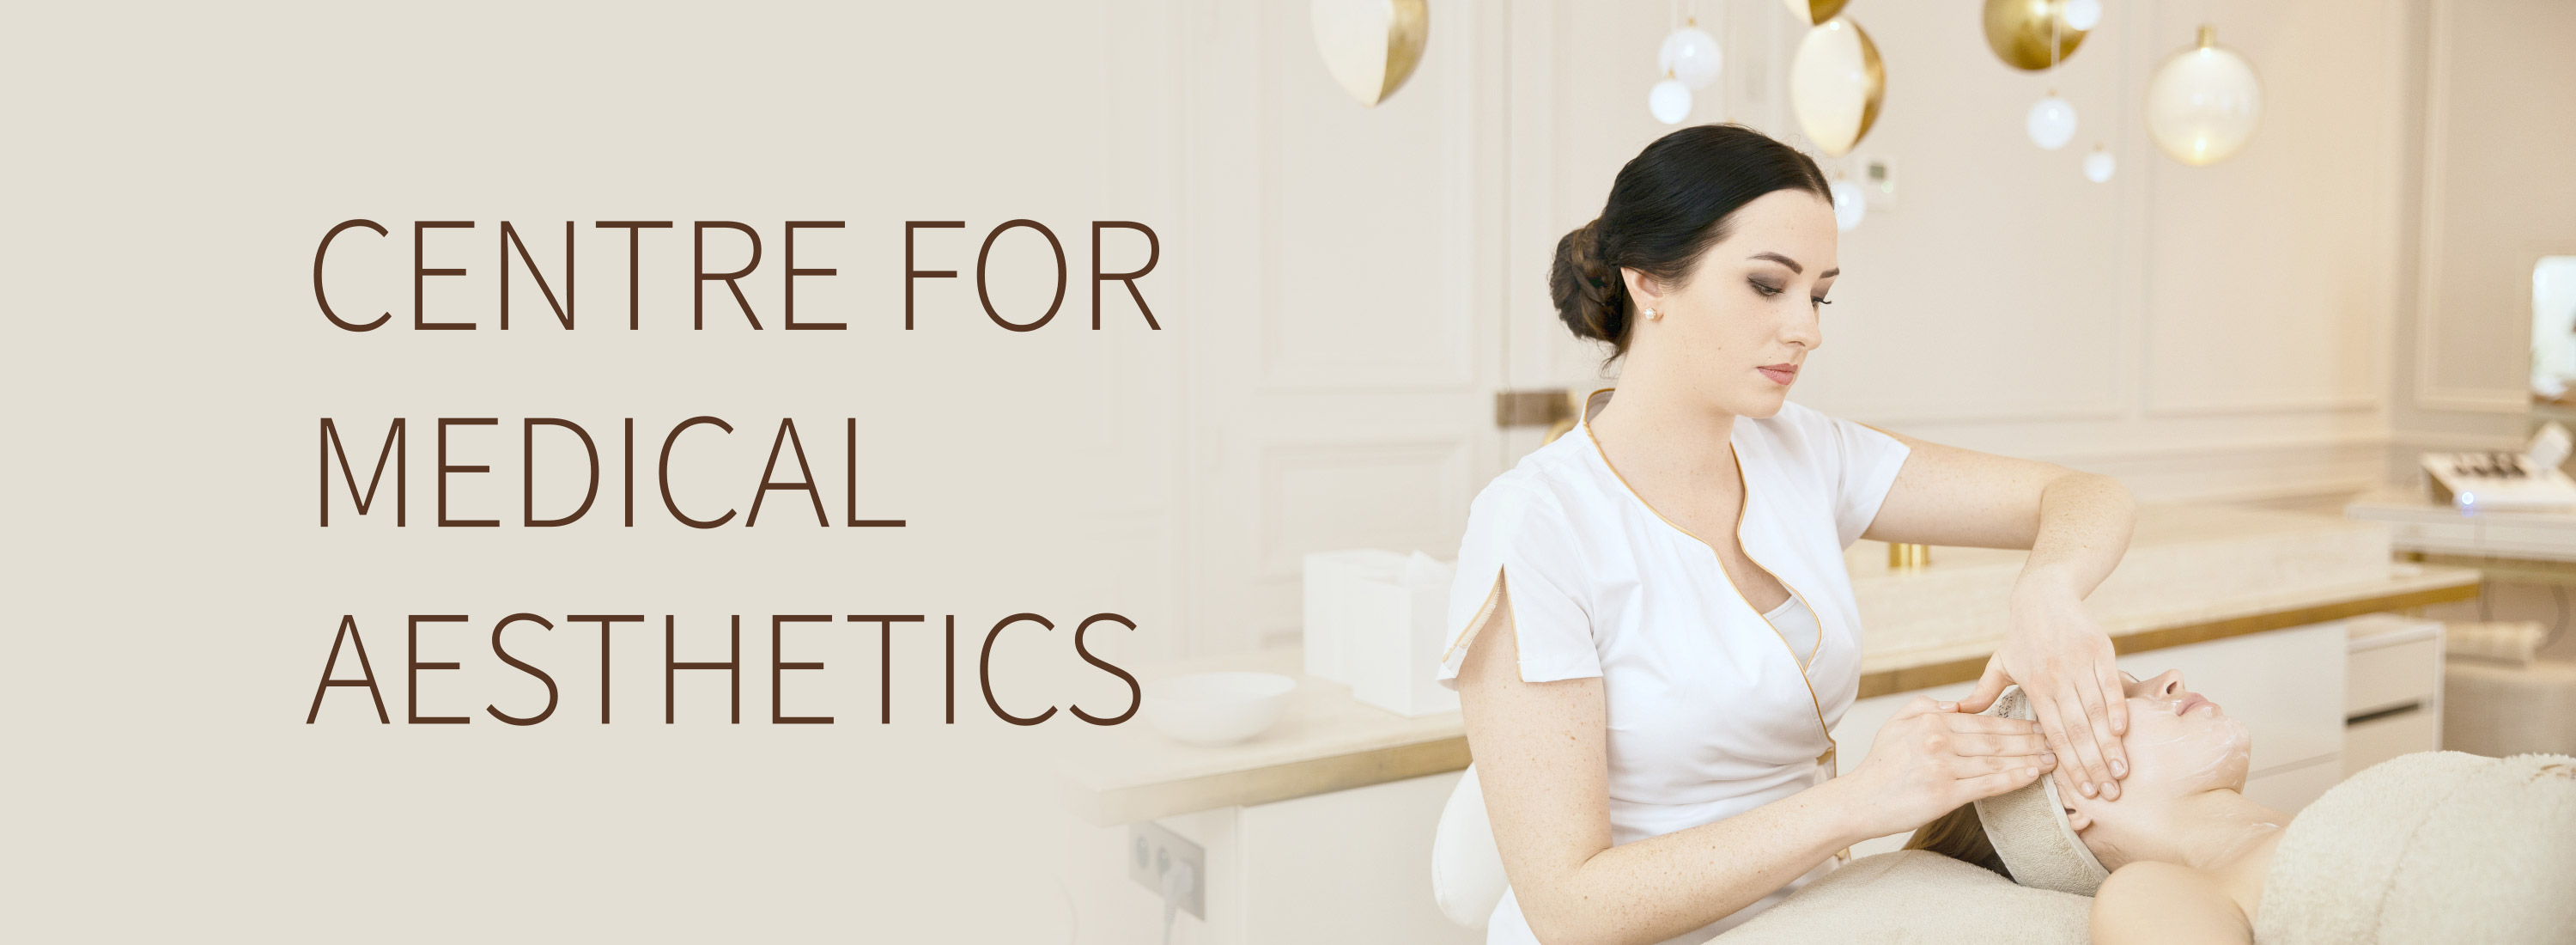 Centre for Medical Aesthetics